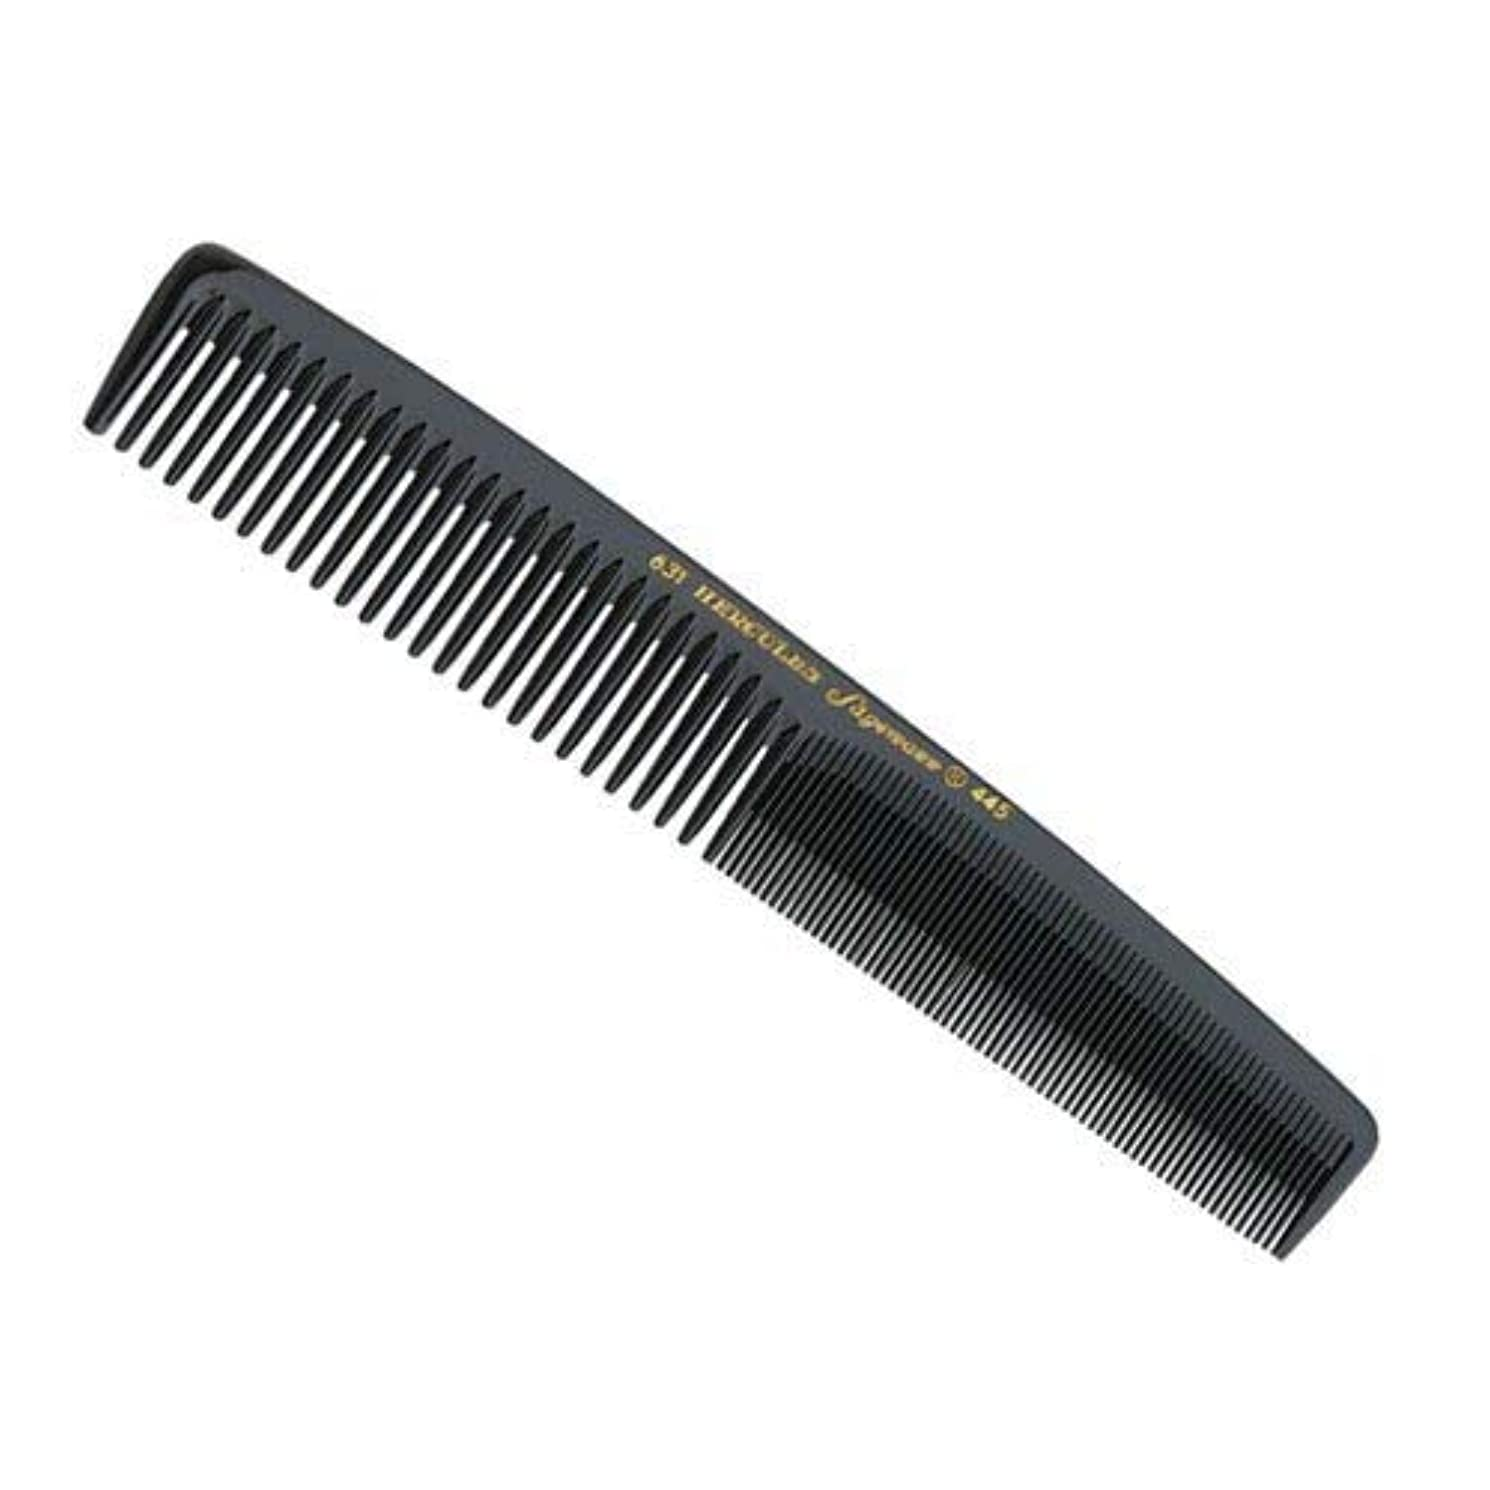 量会うデンマーク語Hercules Sagemann Medium Waver Ladies Hair Comb, Length-17.8 cm [並行輸入品]